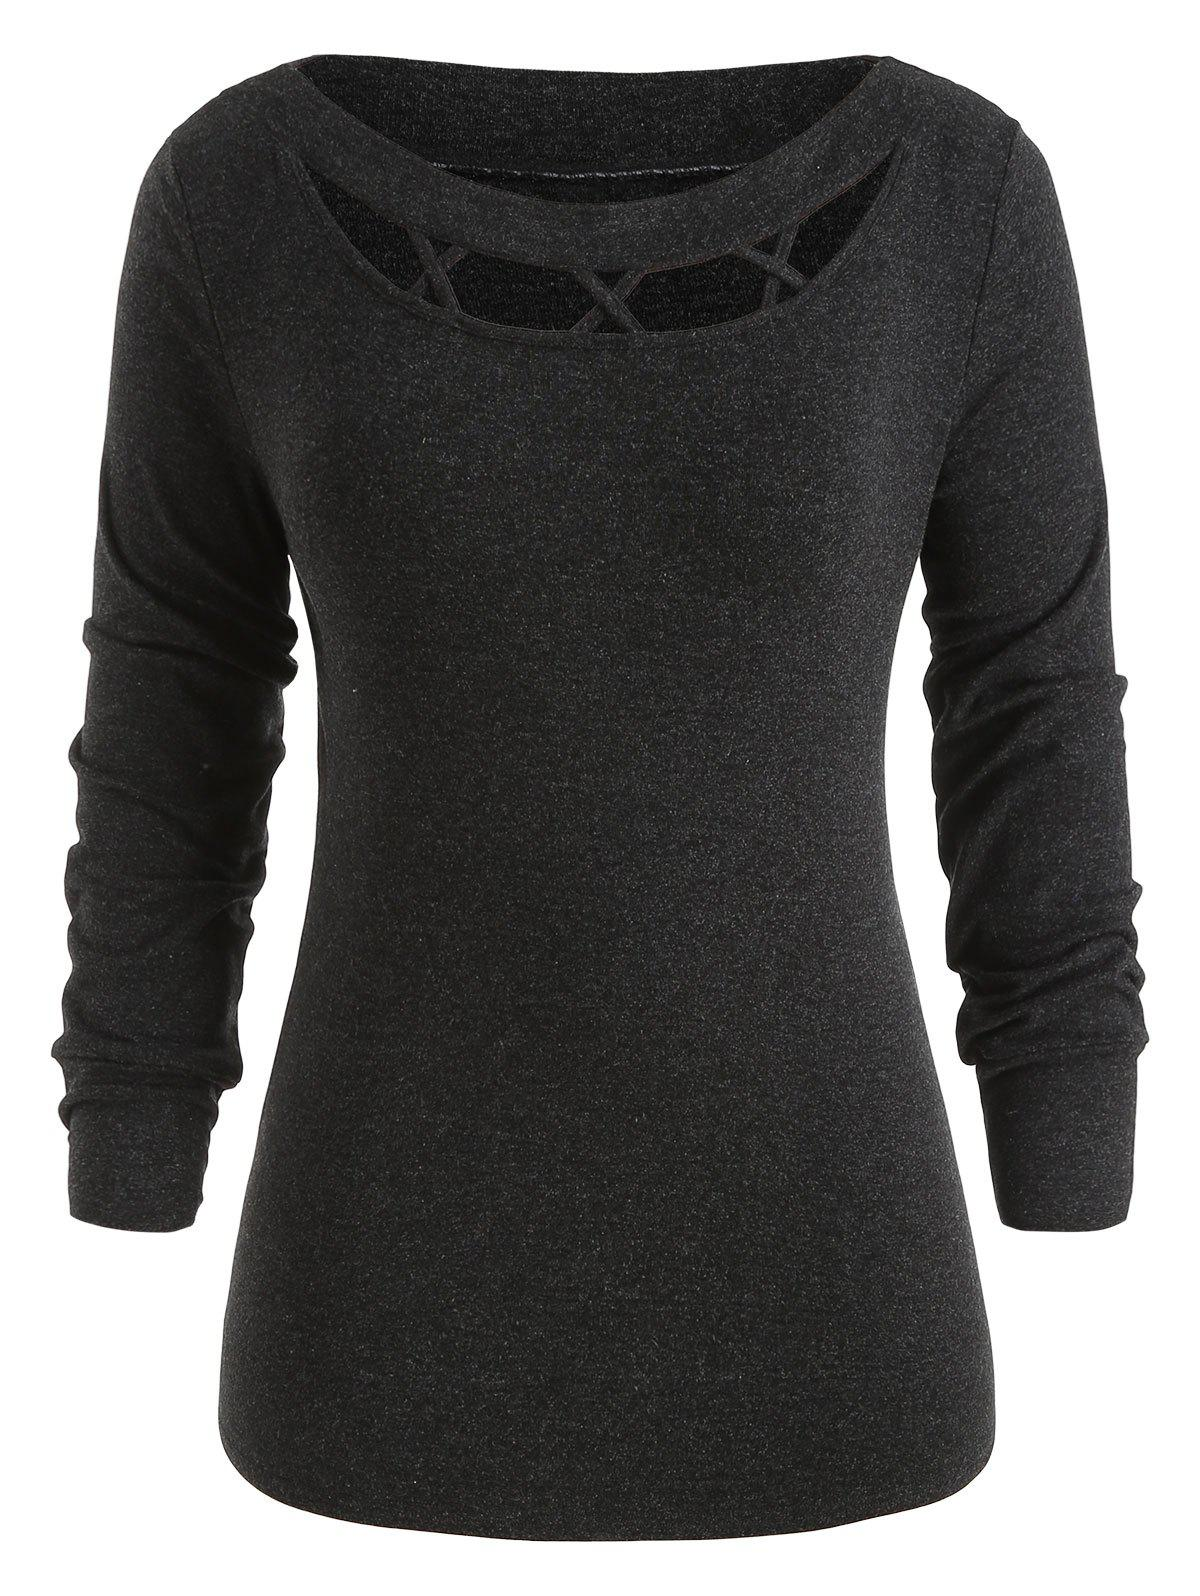 Shop Cross Hollow Out Plus Size Knit Sweater